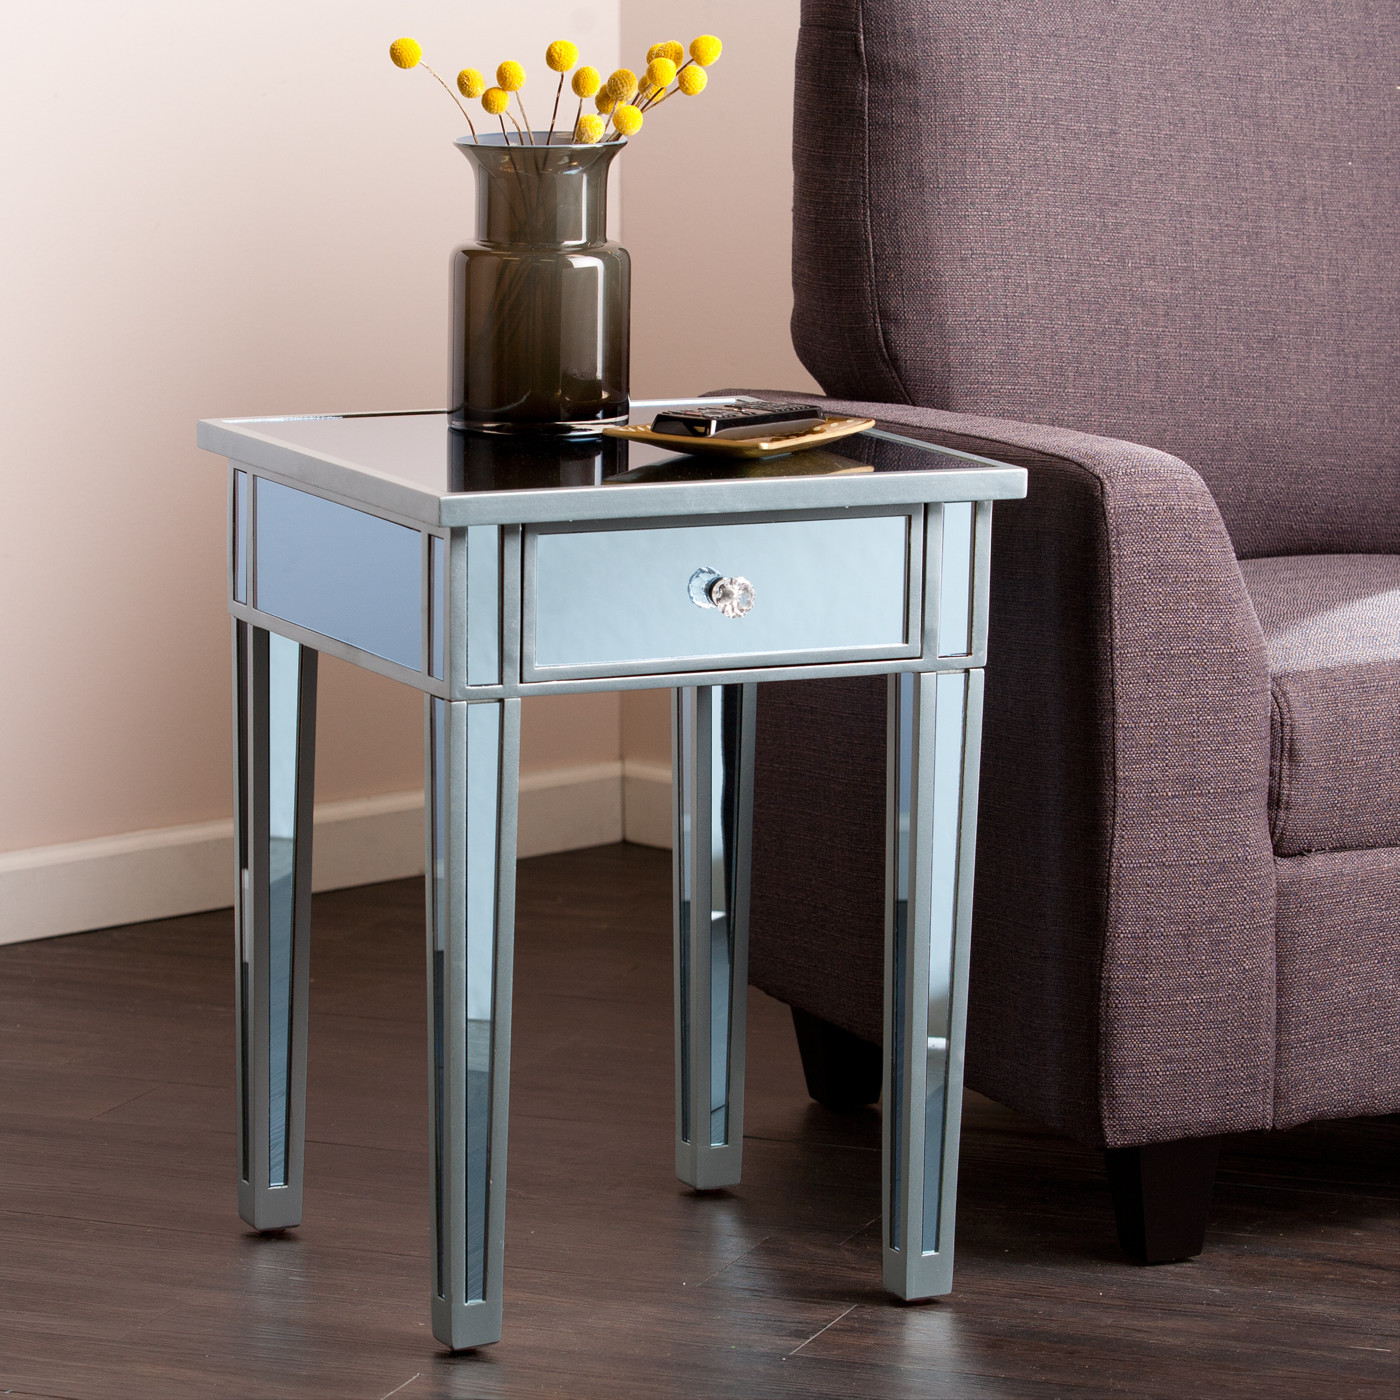 mirrored accent table hotel odaurze designs black ethan allen dining and chairs cabinet drawers trestle bench legs furniture wall straps round wood dinner placemats ceramic drawer